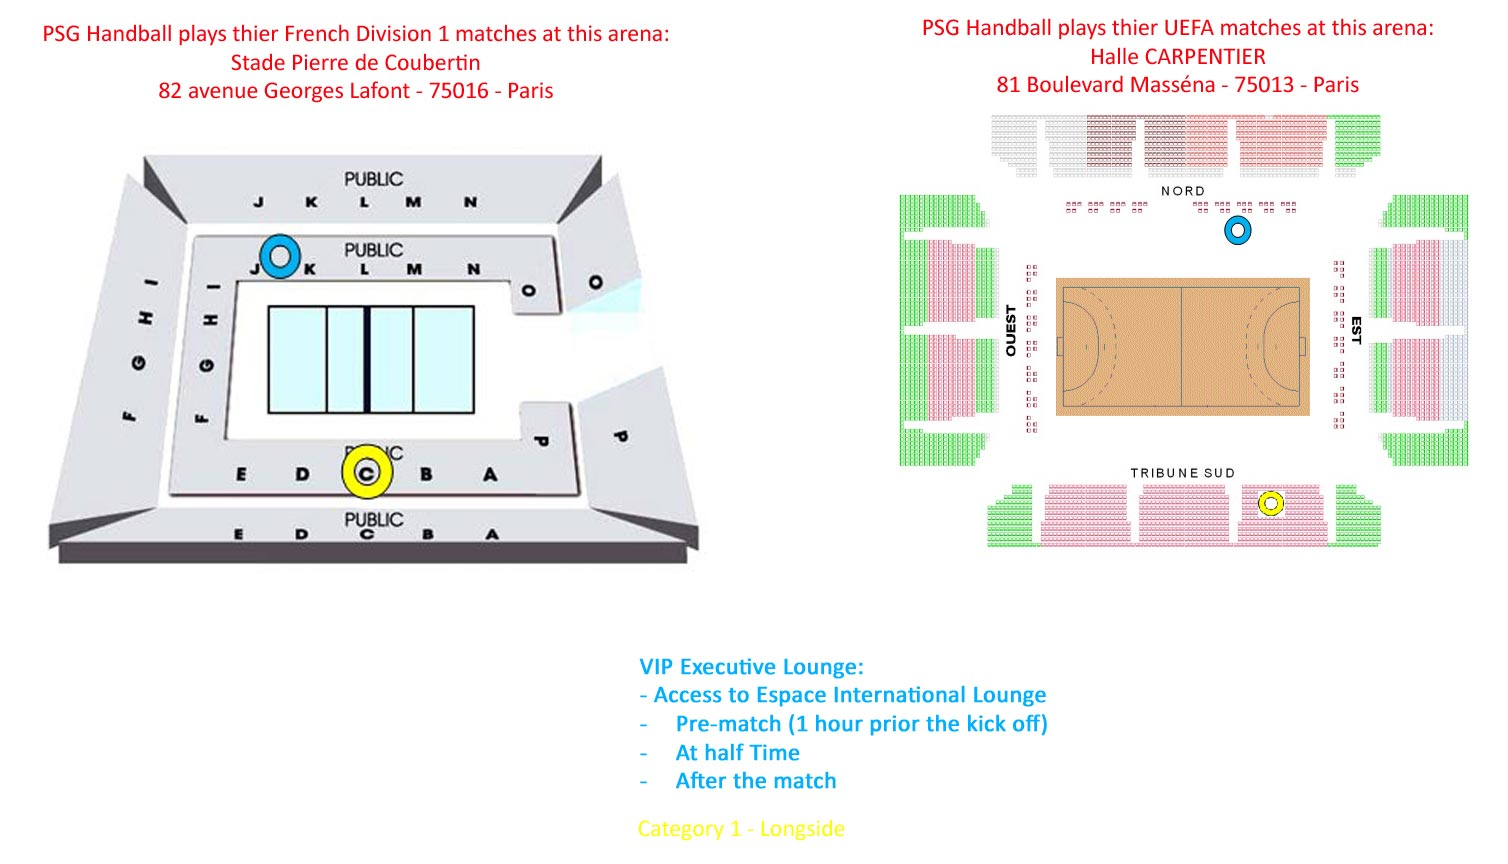 Venue seatingplan Pierre de Coubertin / Halle Carpentier